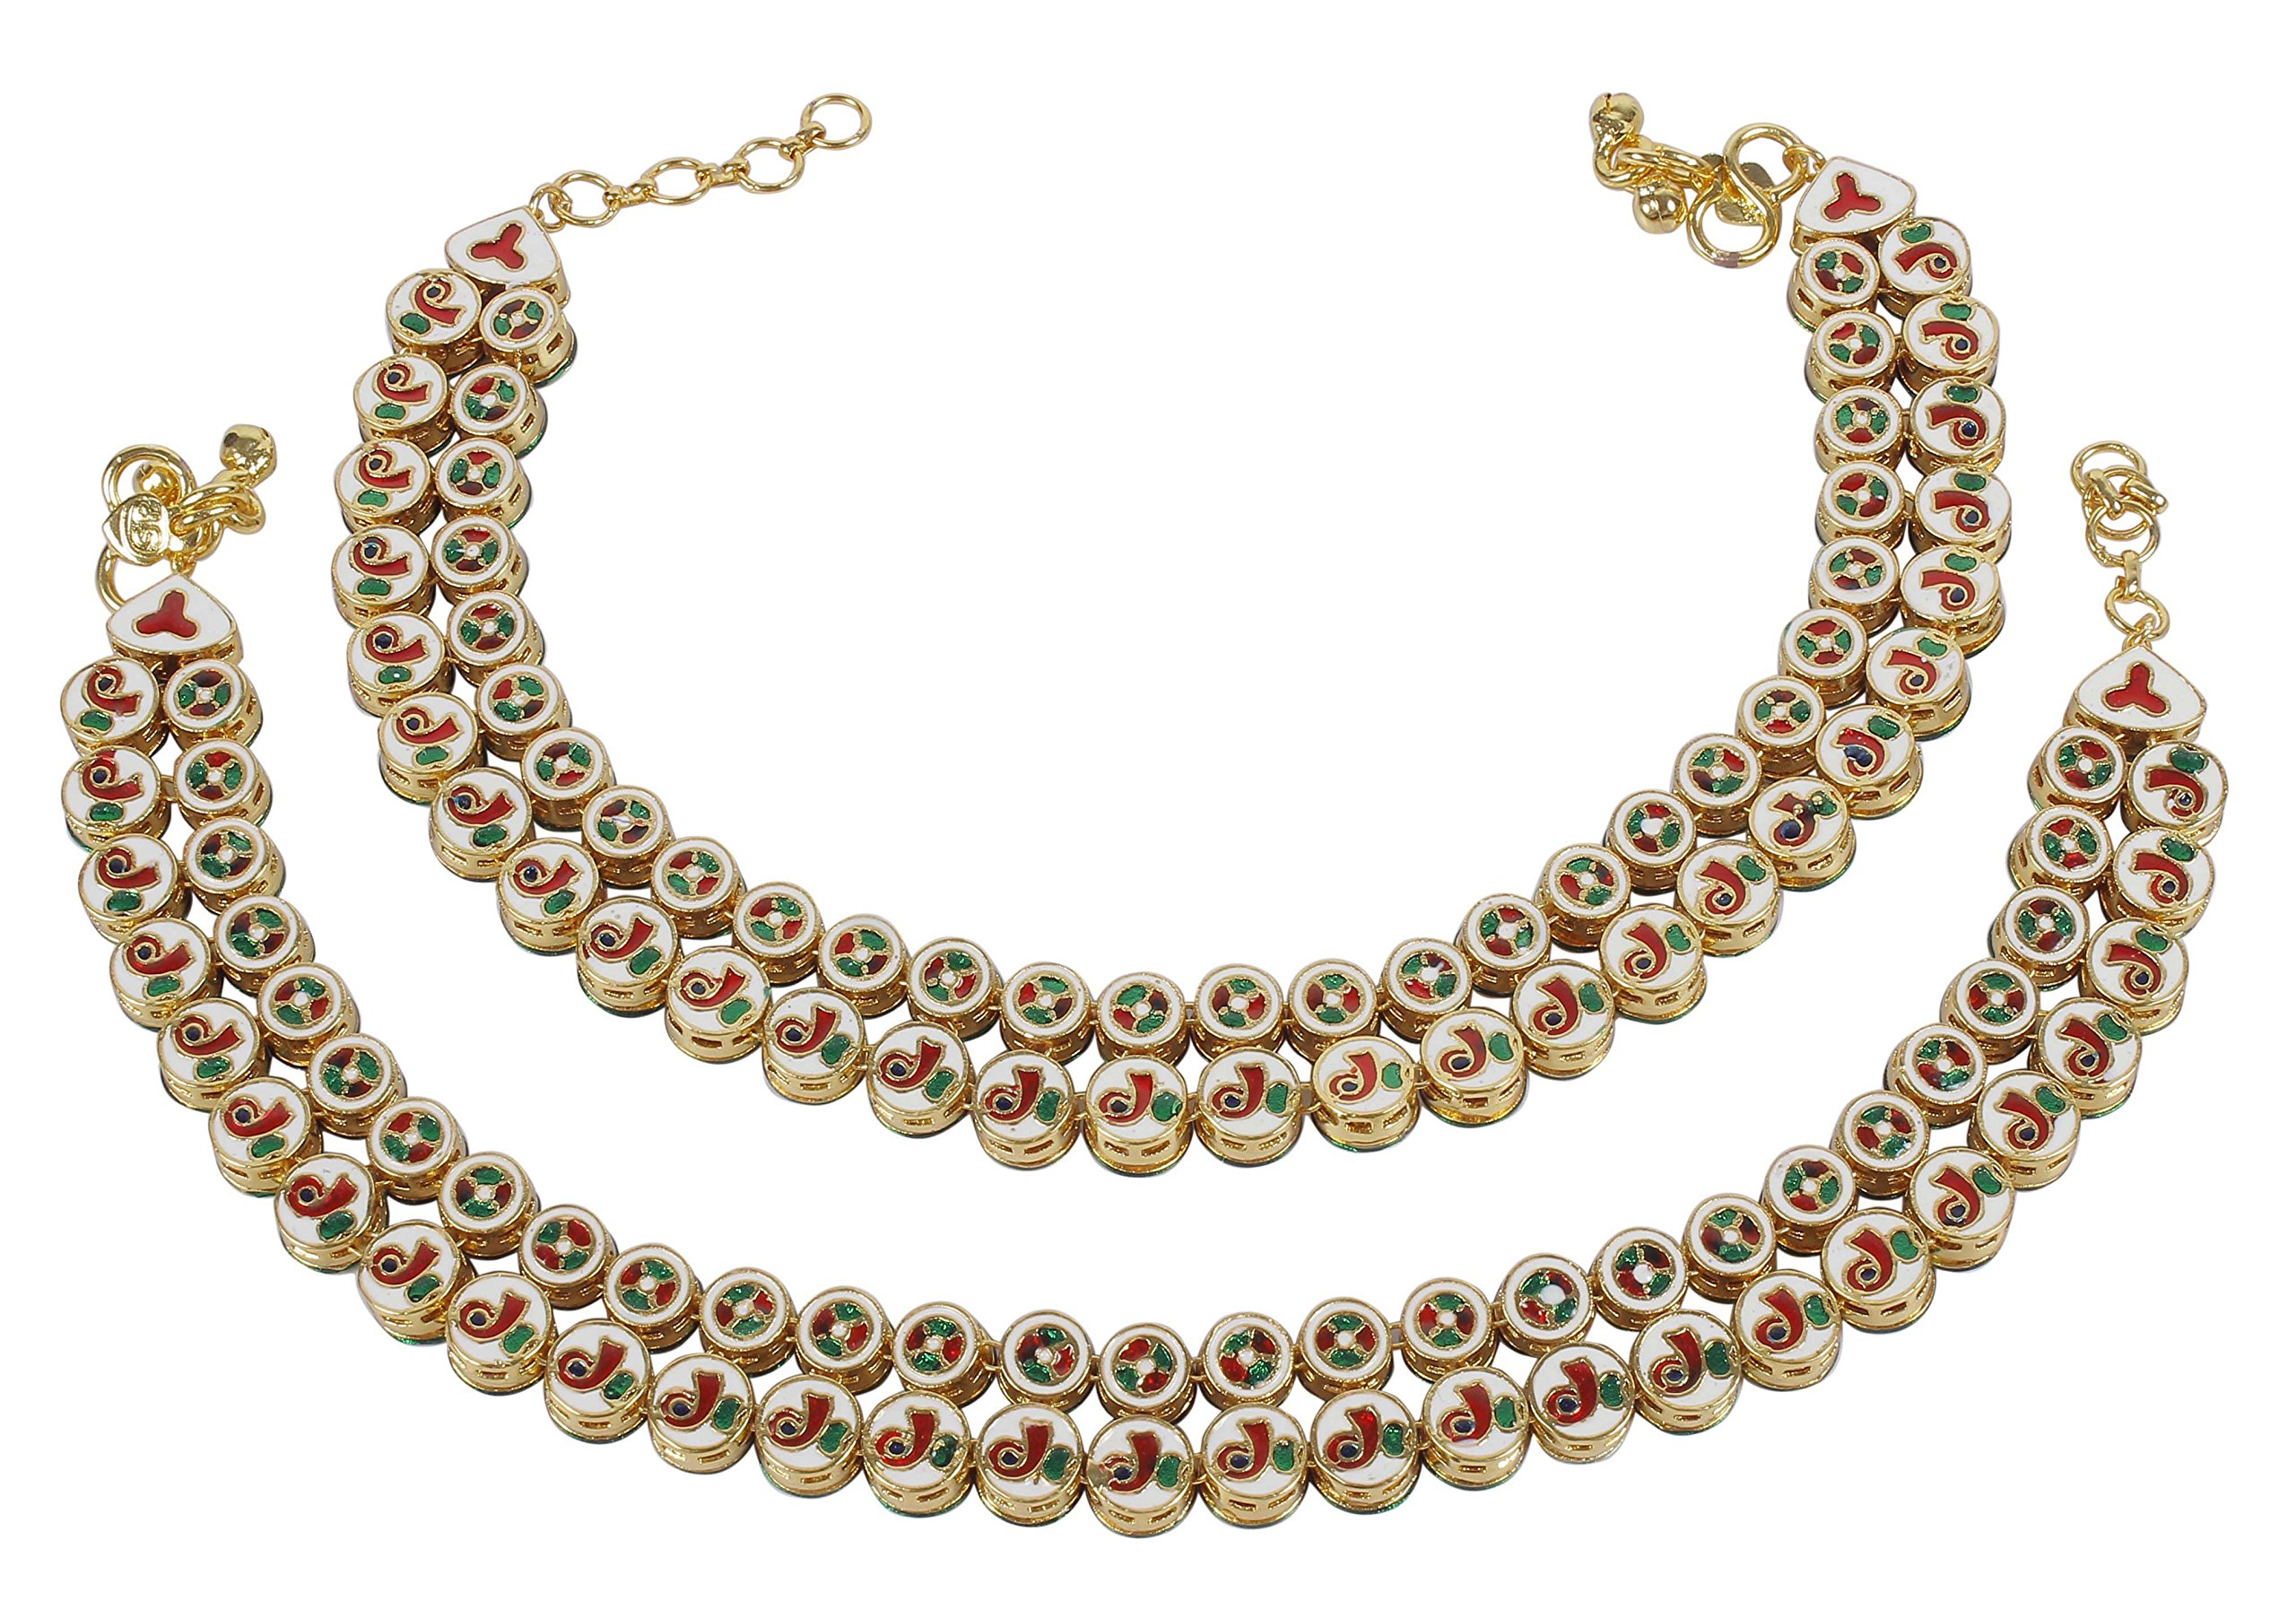 Muchmore Asian Ethnic Traditional Fashion Gold Tone Kundan Stone Anklet Partywear Jewelry by MUCHMORE (Image #3)